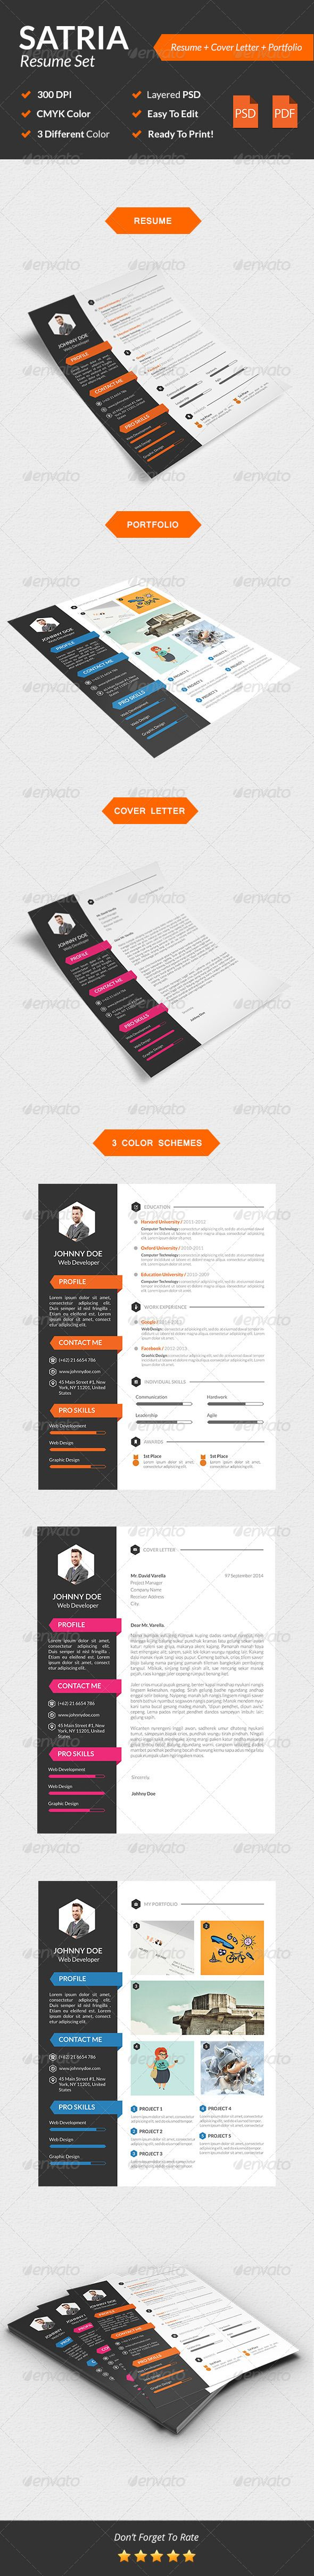 Satria Modern Resume Set — Photoshop PSD #resume #minimalist design • Available here → https://graphicriver.net/item/satria-modern-resume-set/8535170?ref=pxcr